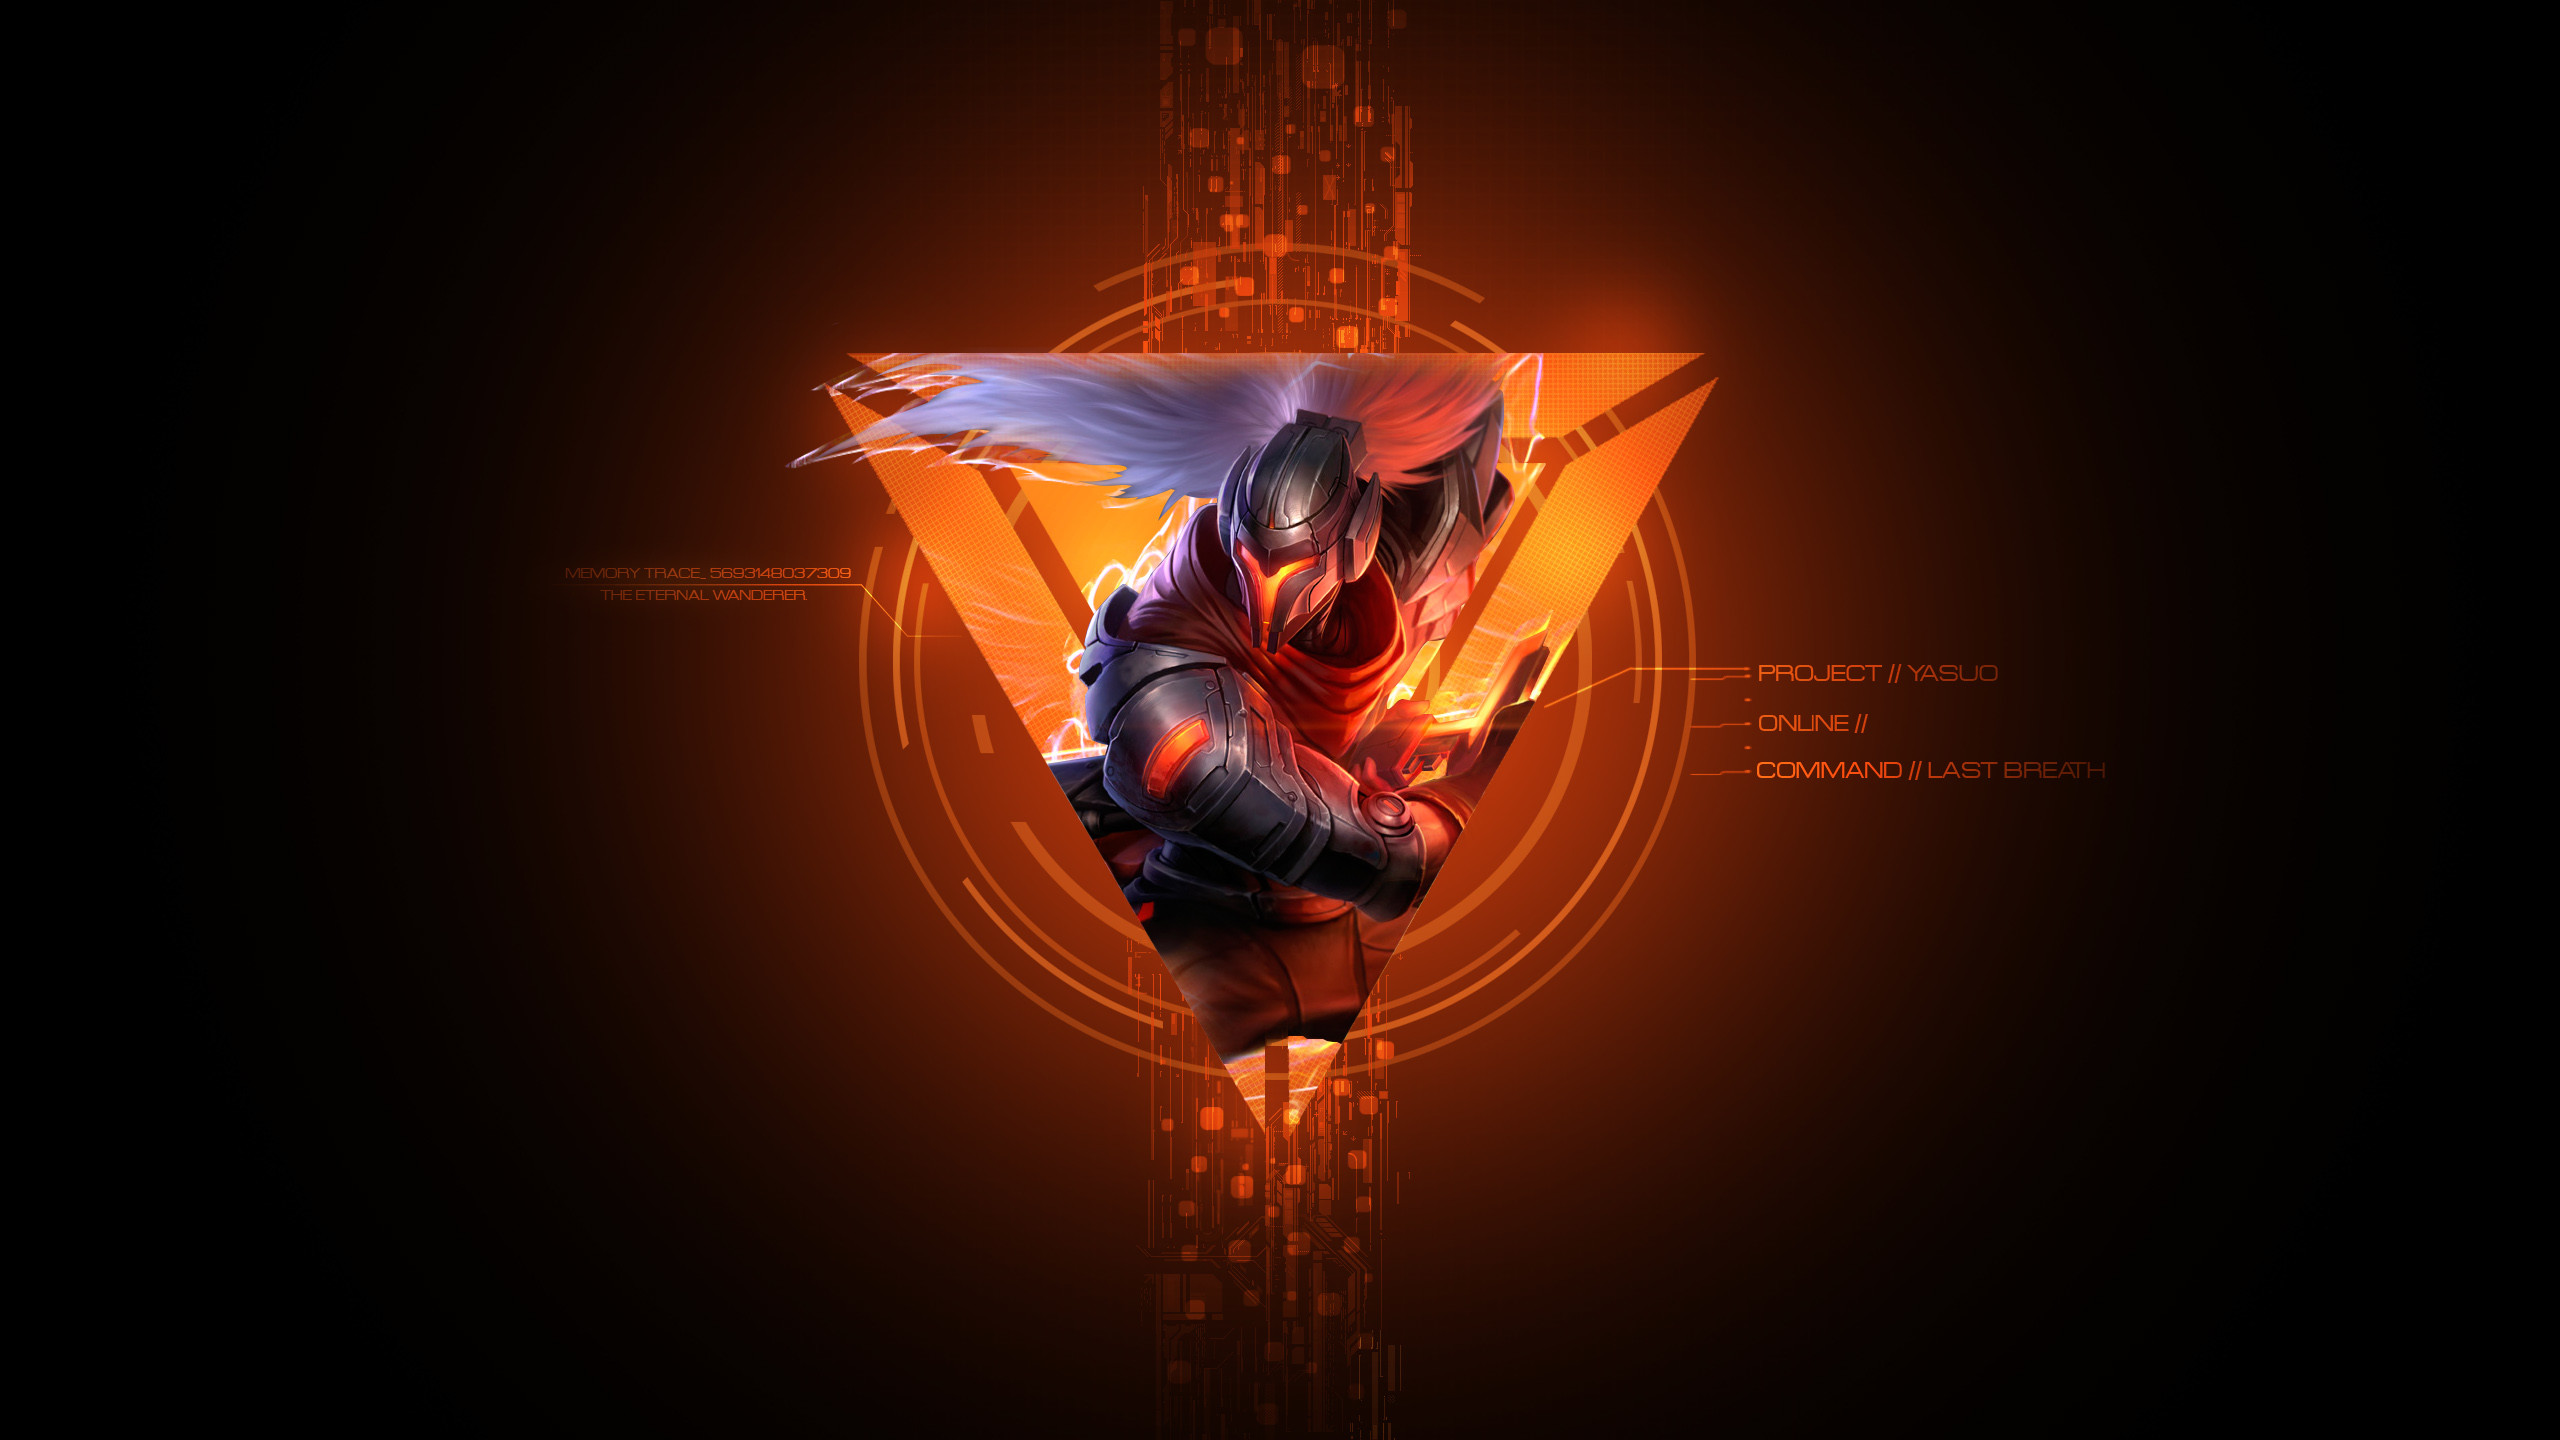 Hd Wallpapers Artworks For League Of: Blood Moon Yasuo Wallpaper (86+ Images